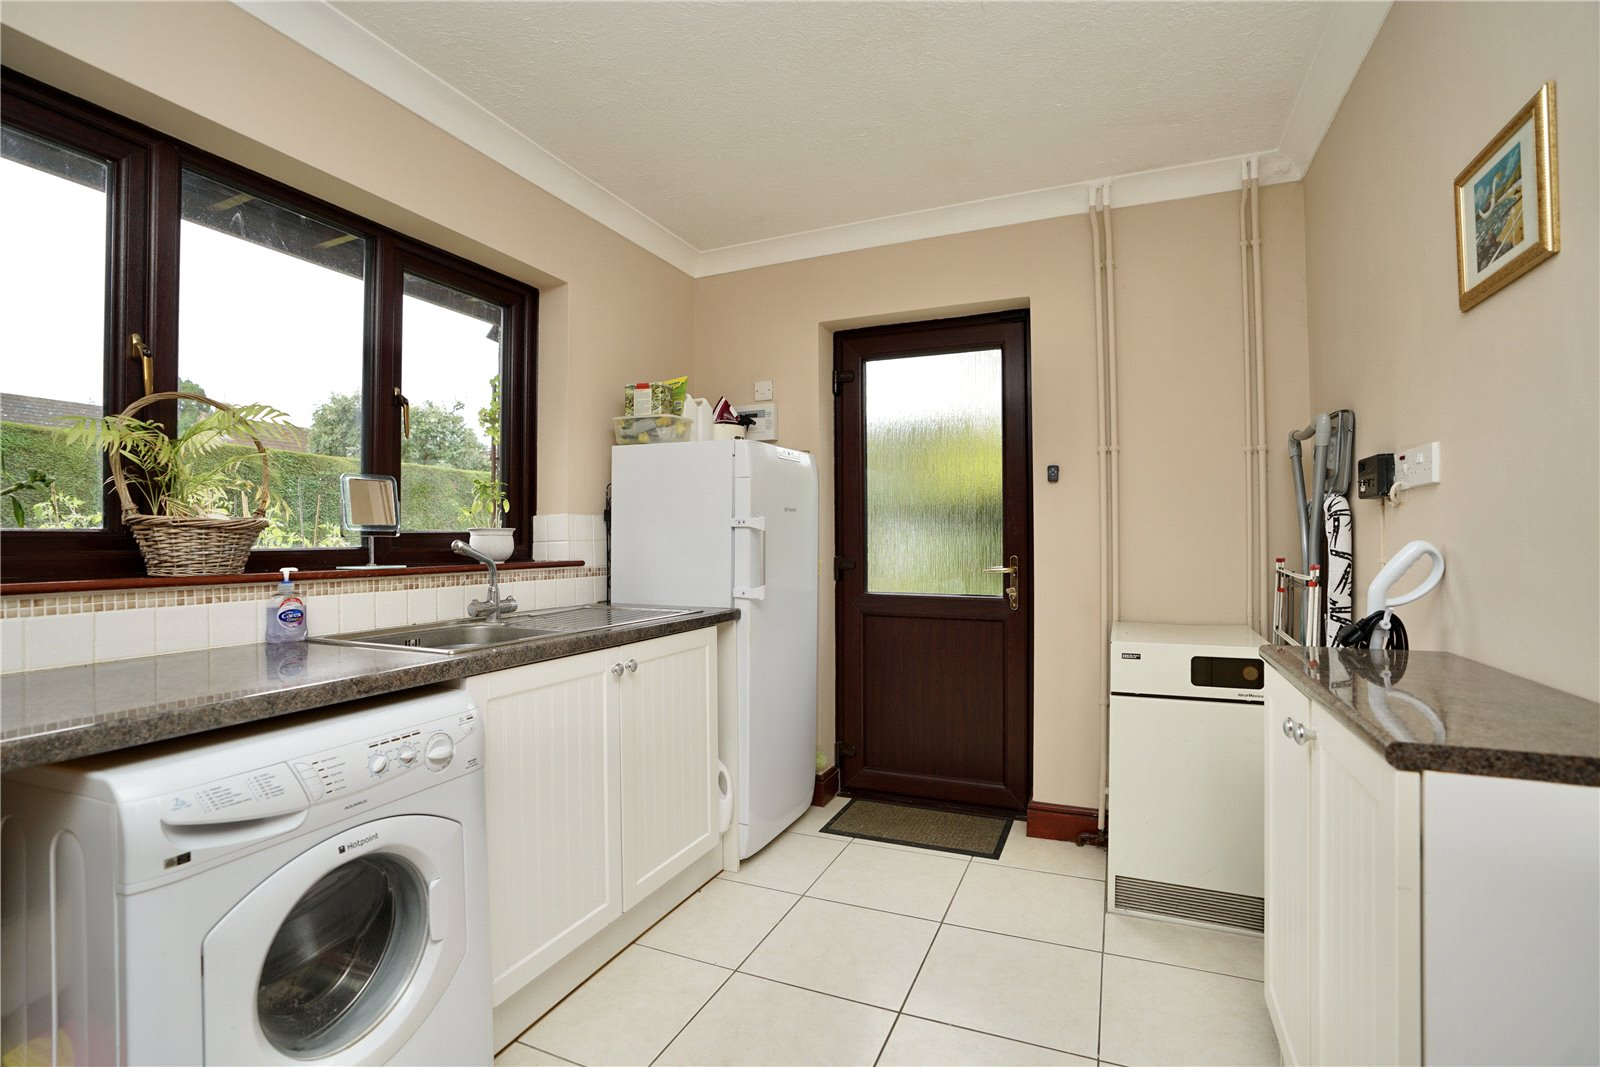 5 bed house for sale in Great North Road, Eaton Ford  - Property Image 4